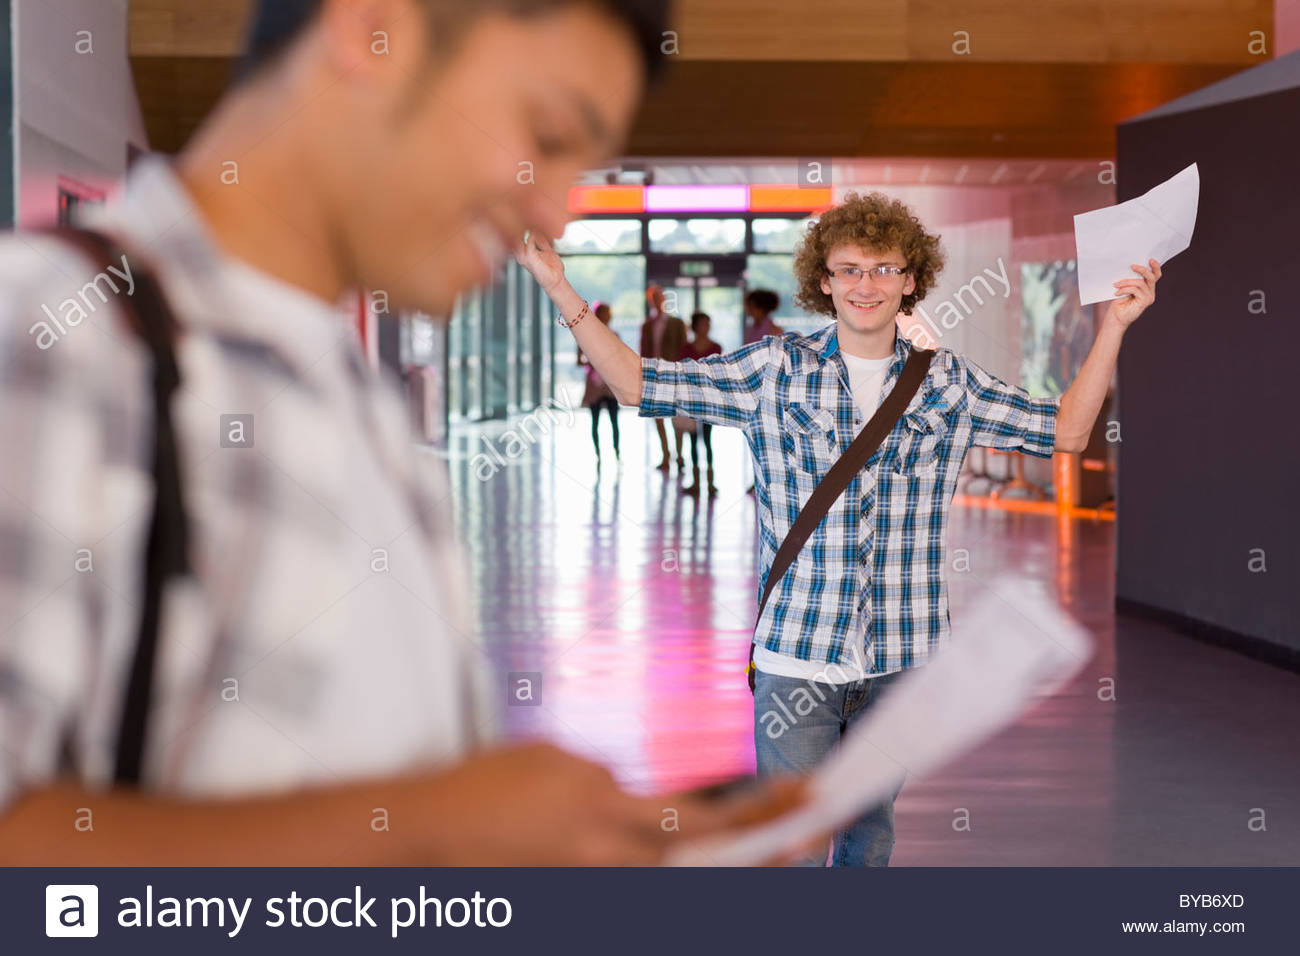 Excited student cheering after receiving good news about test results - Stock Image